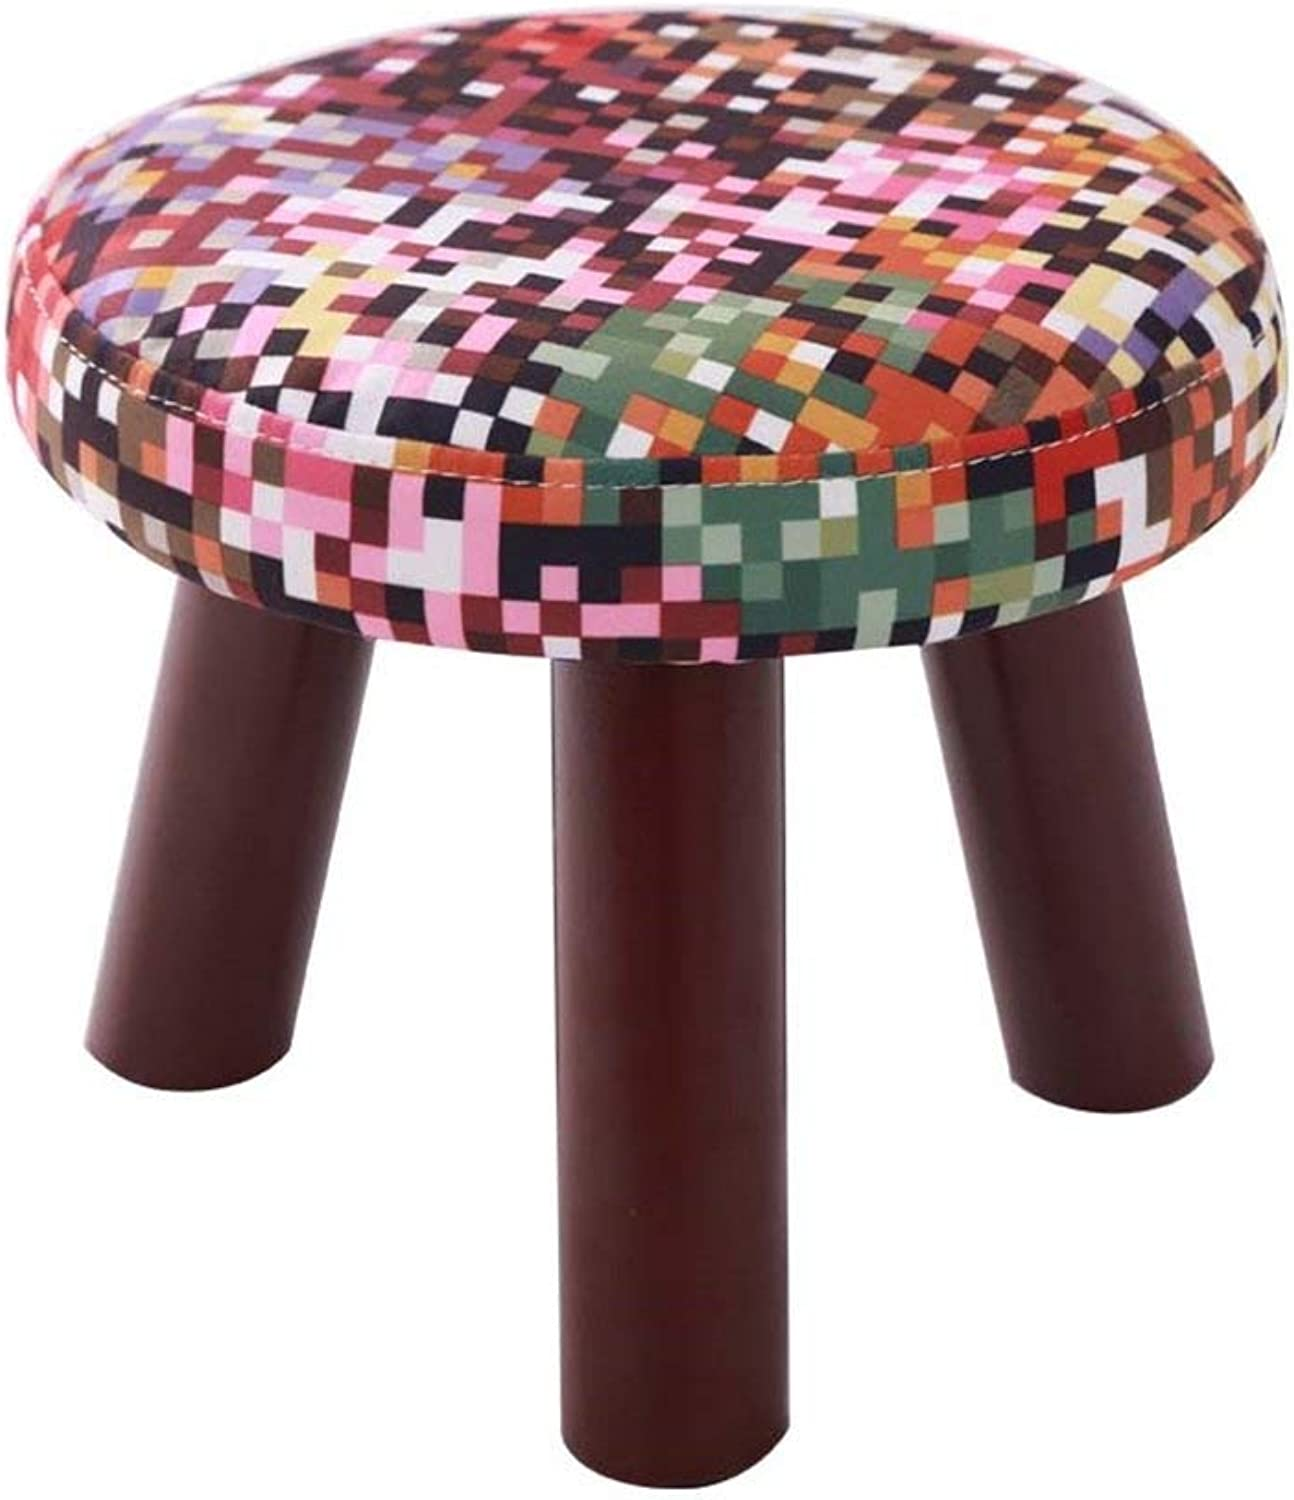 Juexianggou Solid Wood shoes Stool 3 Legs Round Upholstered Footstool Sofa Low Stool Footrest 28x28x25cm for Hallway Foot Stool for Bedroom (color    13)